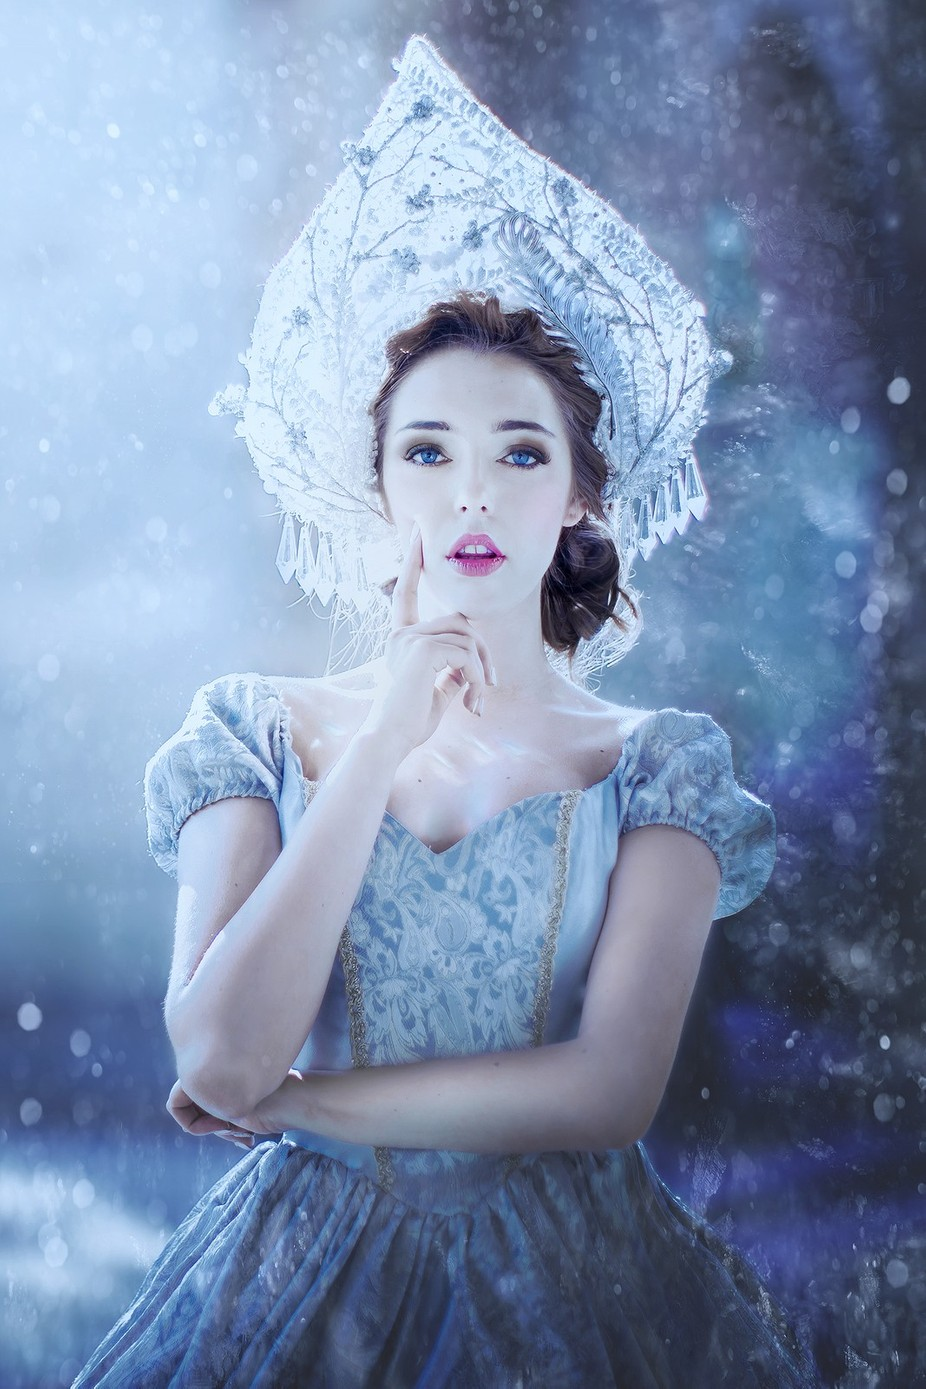 winter queen  by magorzatakuriata - Image Of The Month Photo Contest Vol 28